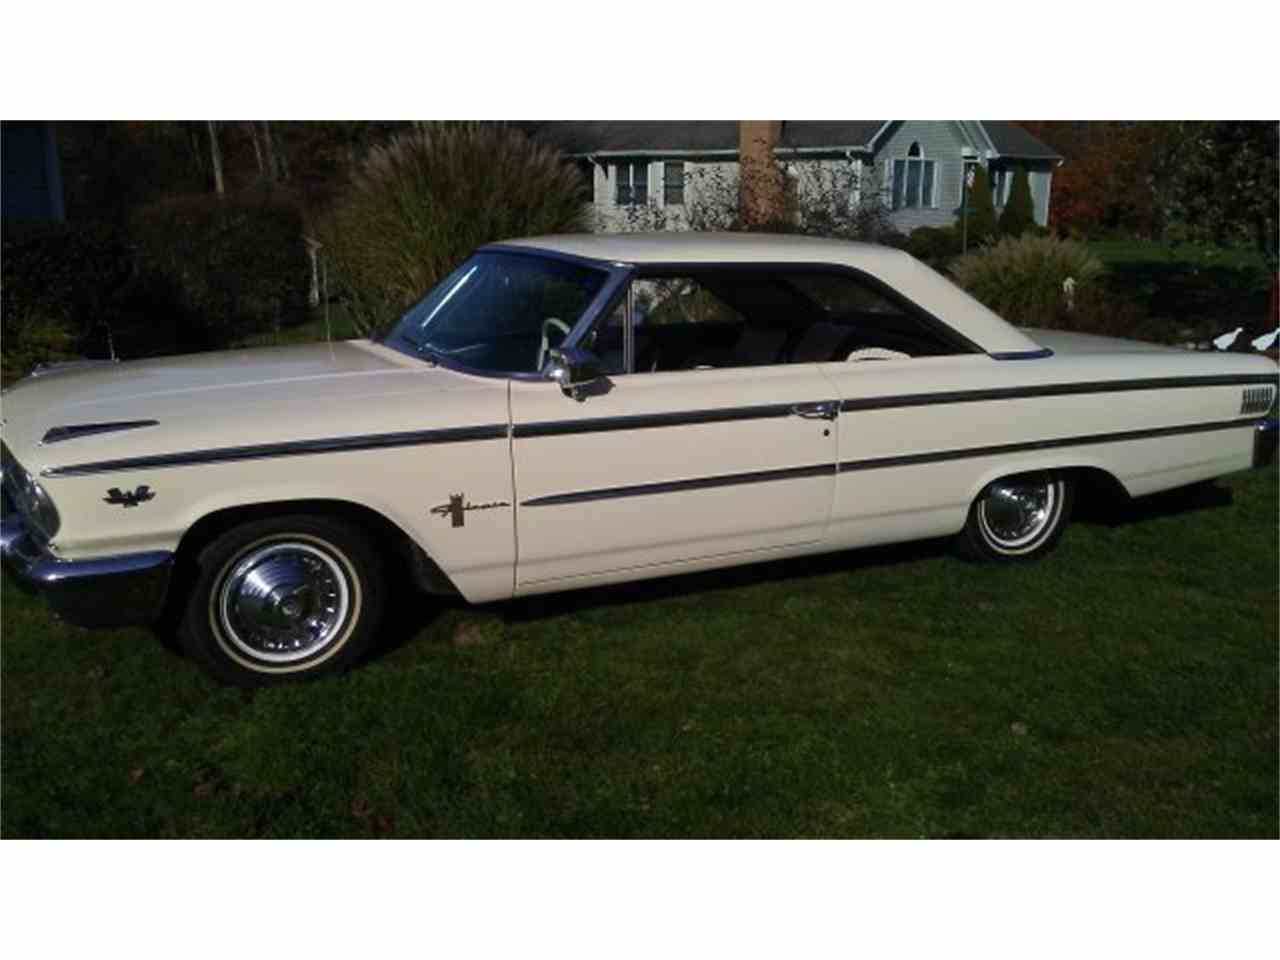 1963 Ford Galaxie For Sale On Craigslist Images Of Home Design Mercury Monterey Wiring Diagram 1964 Galaxy Neutral Safety Switch